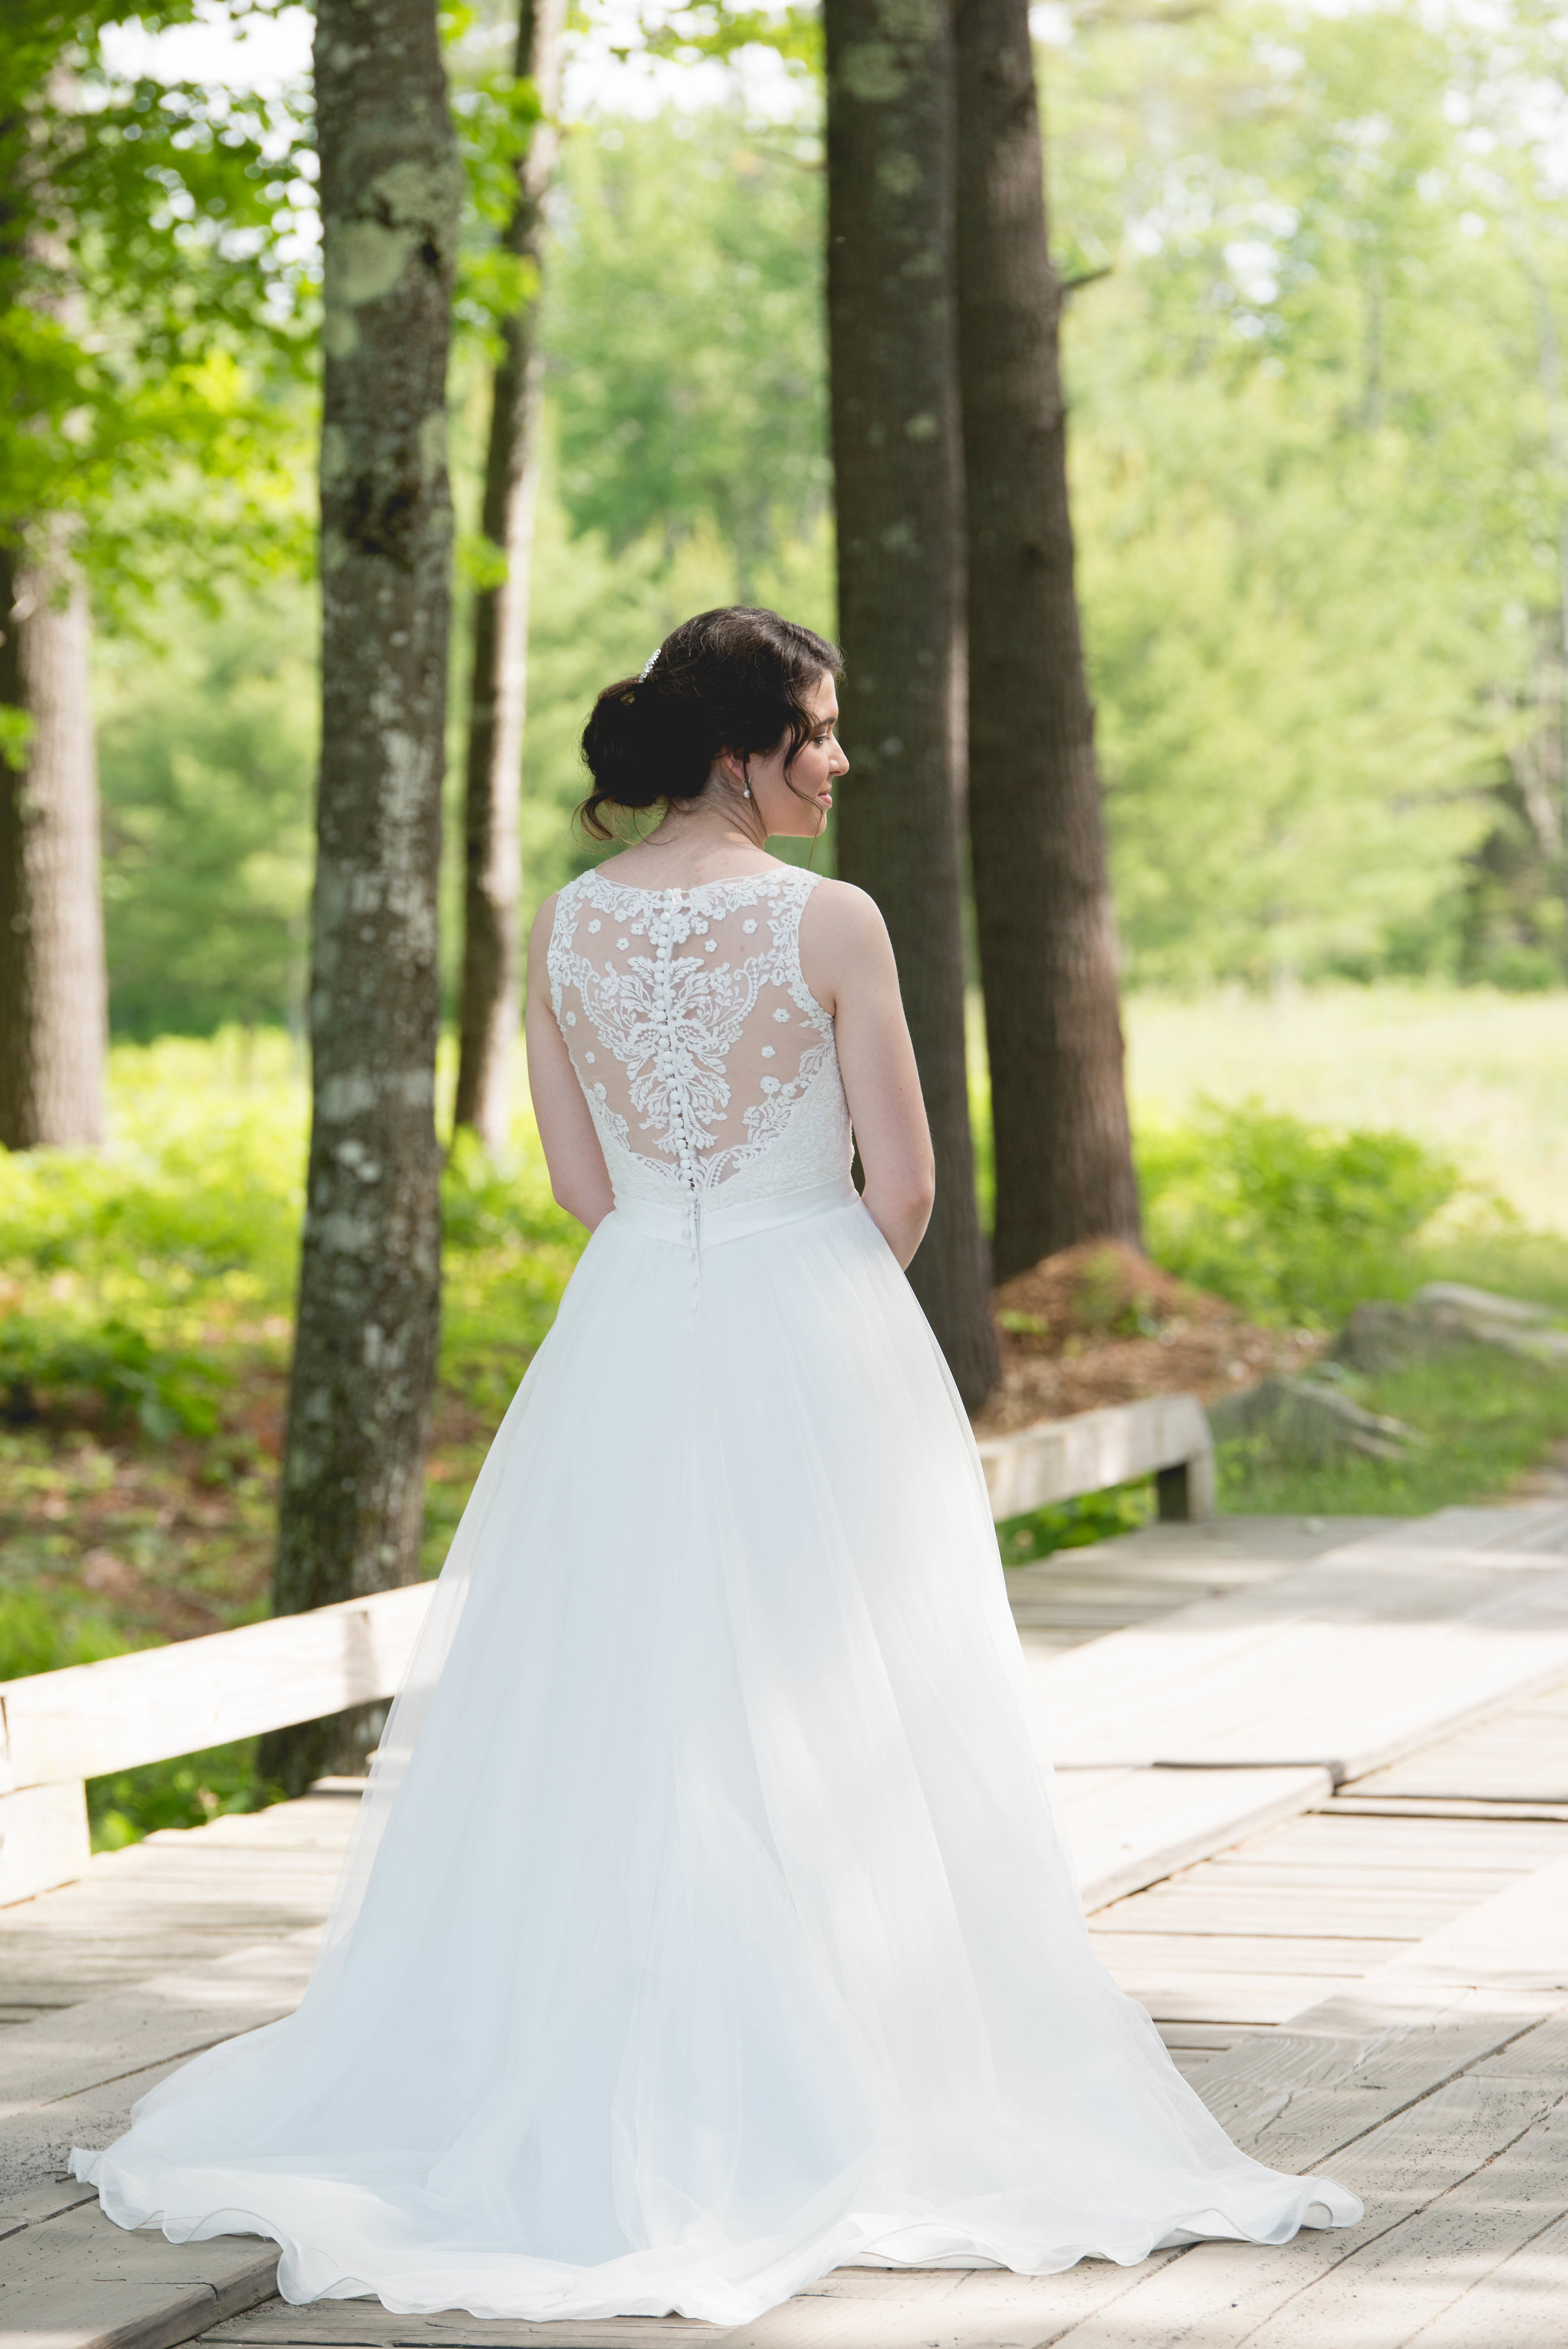 Allure bridals - 271612 size 6 - $550 - (37% OFF)